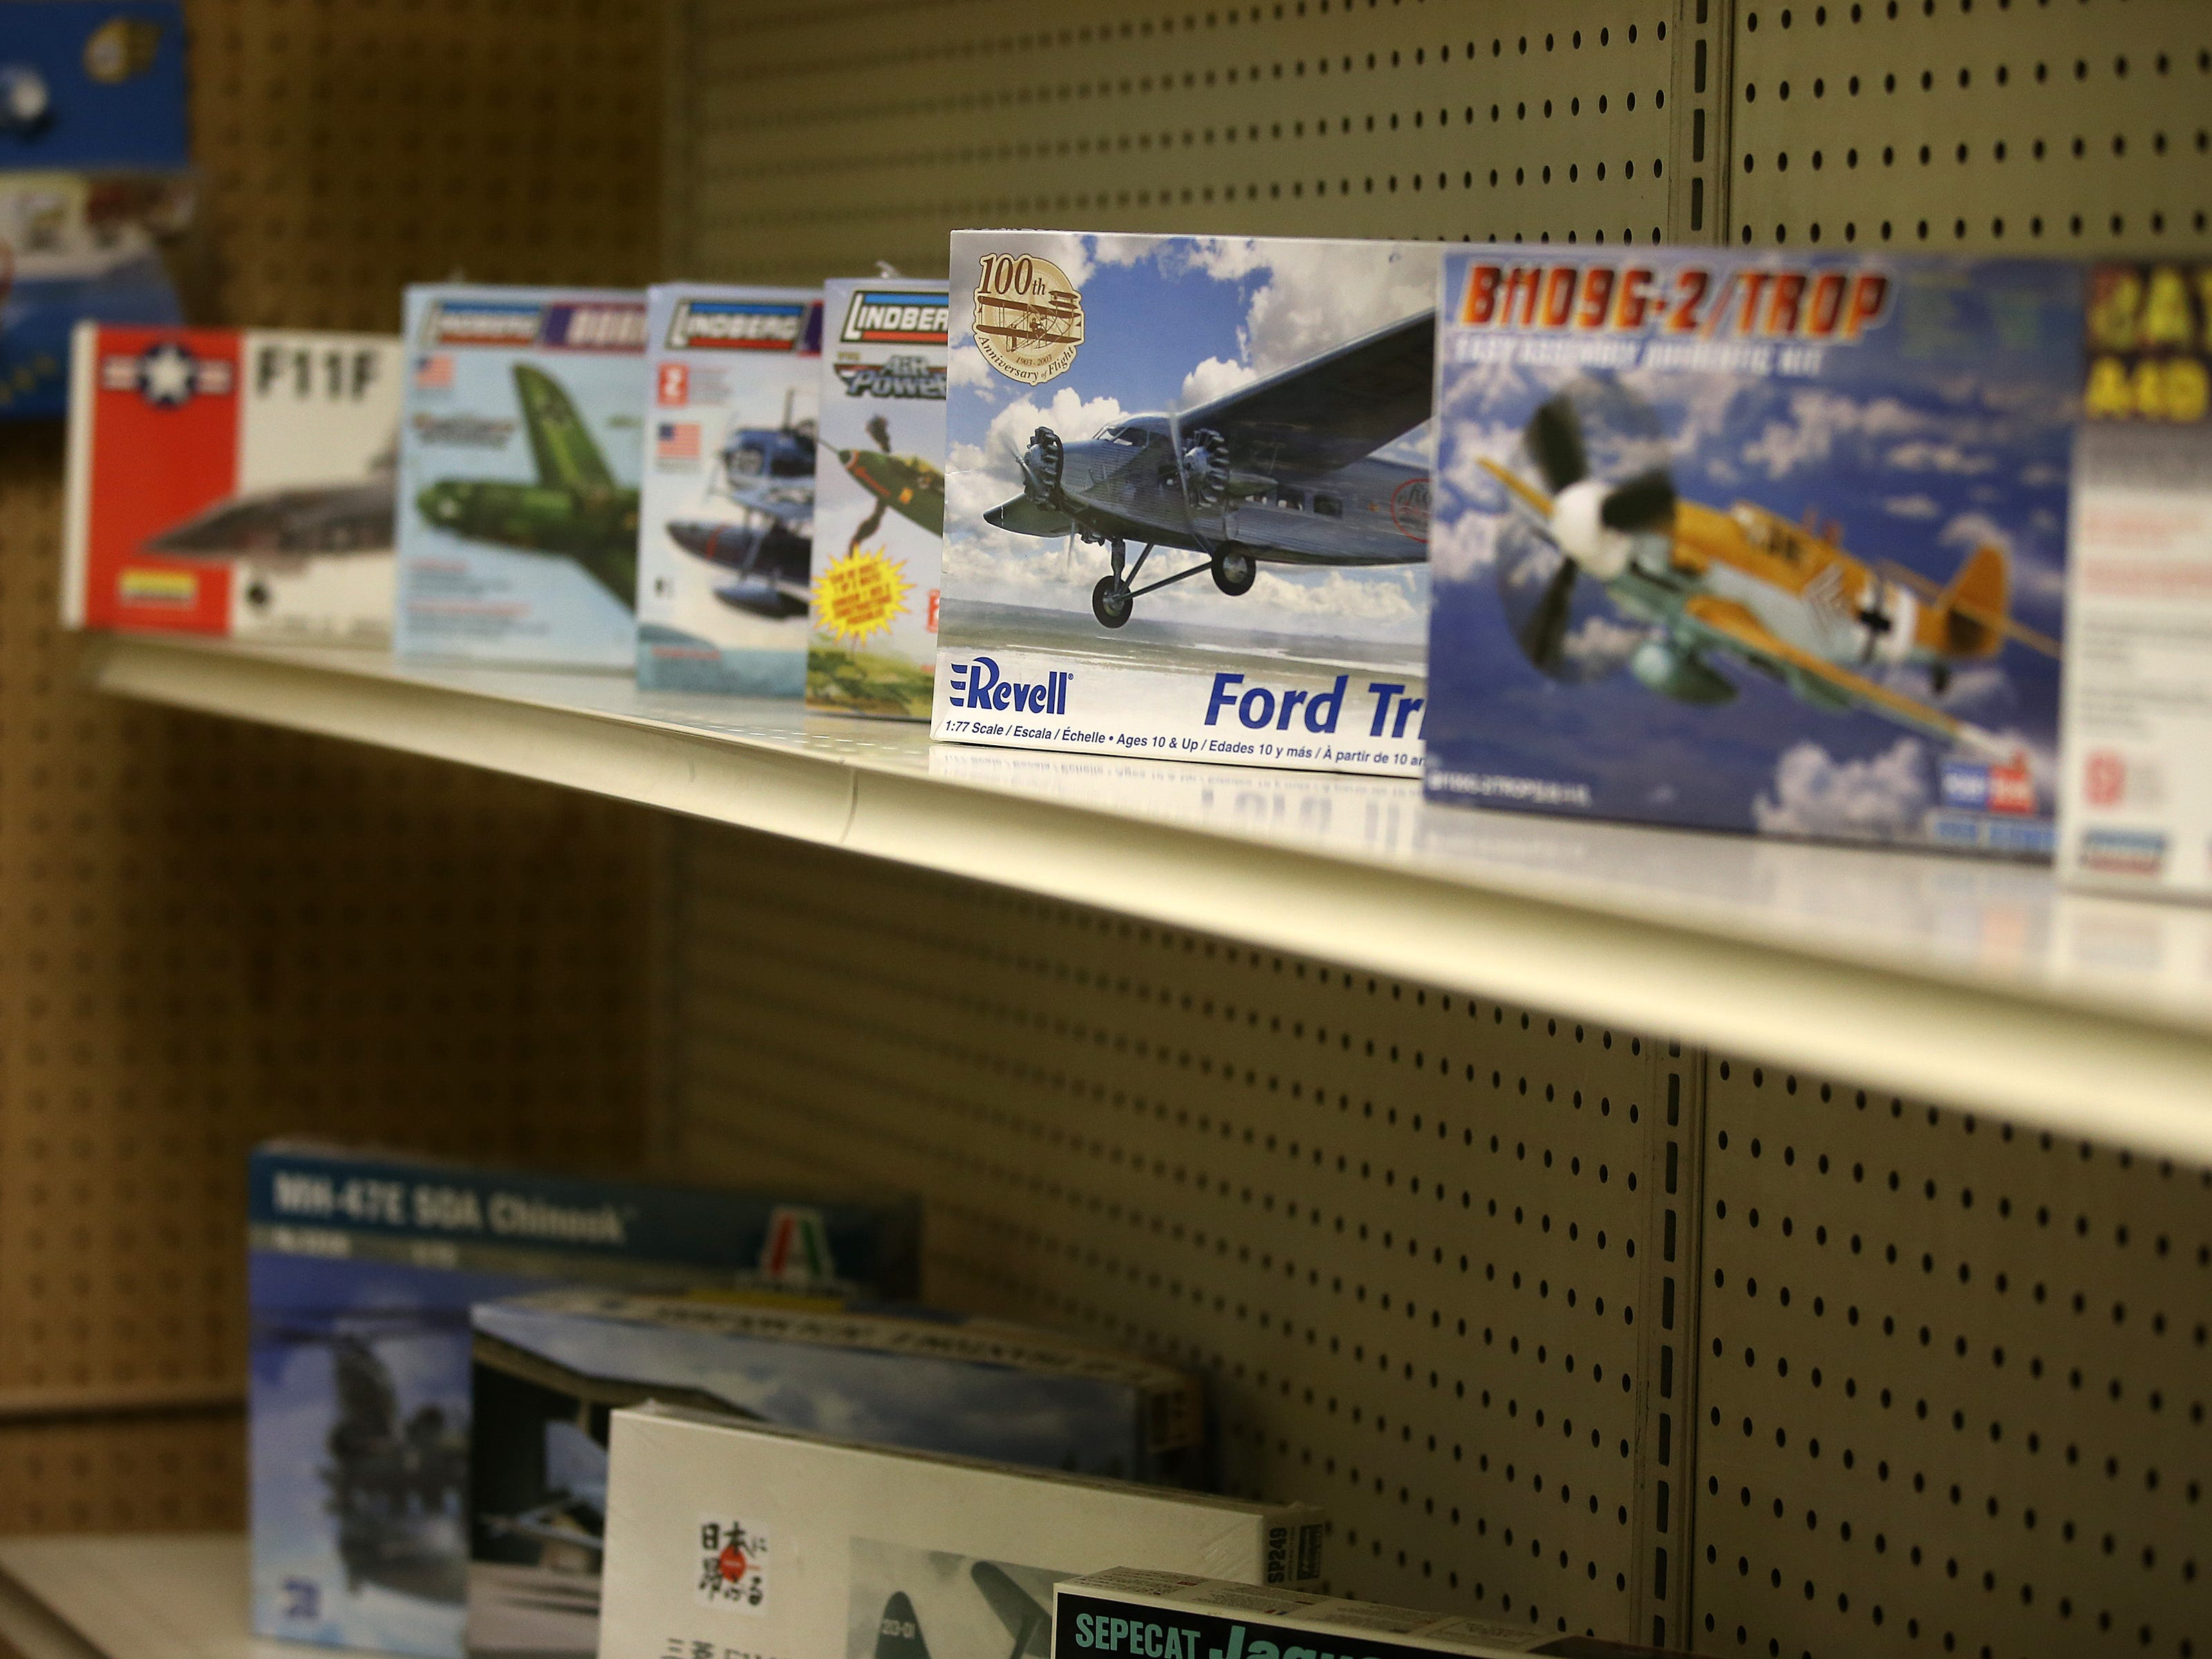 Frank Gustafson, owner of Jackson Hobby Shop, talks about retiring and closing after 50 years at Jackson Hobby Shop in Jackson, NJ Friday January 11, 2019. Model airplanes line the shelves.